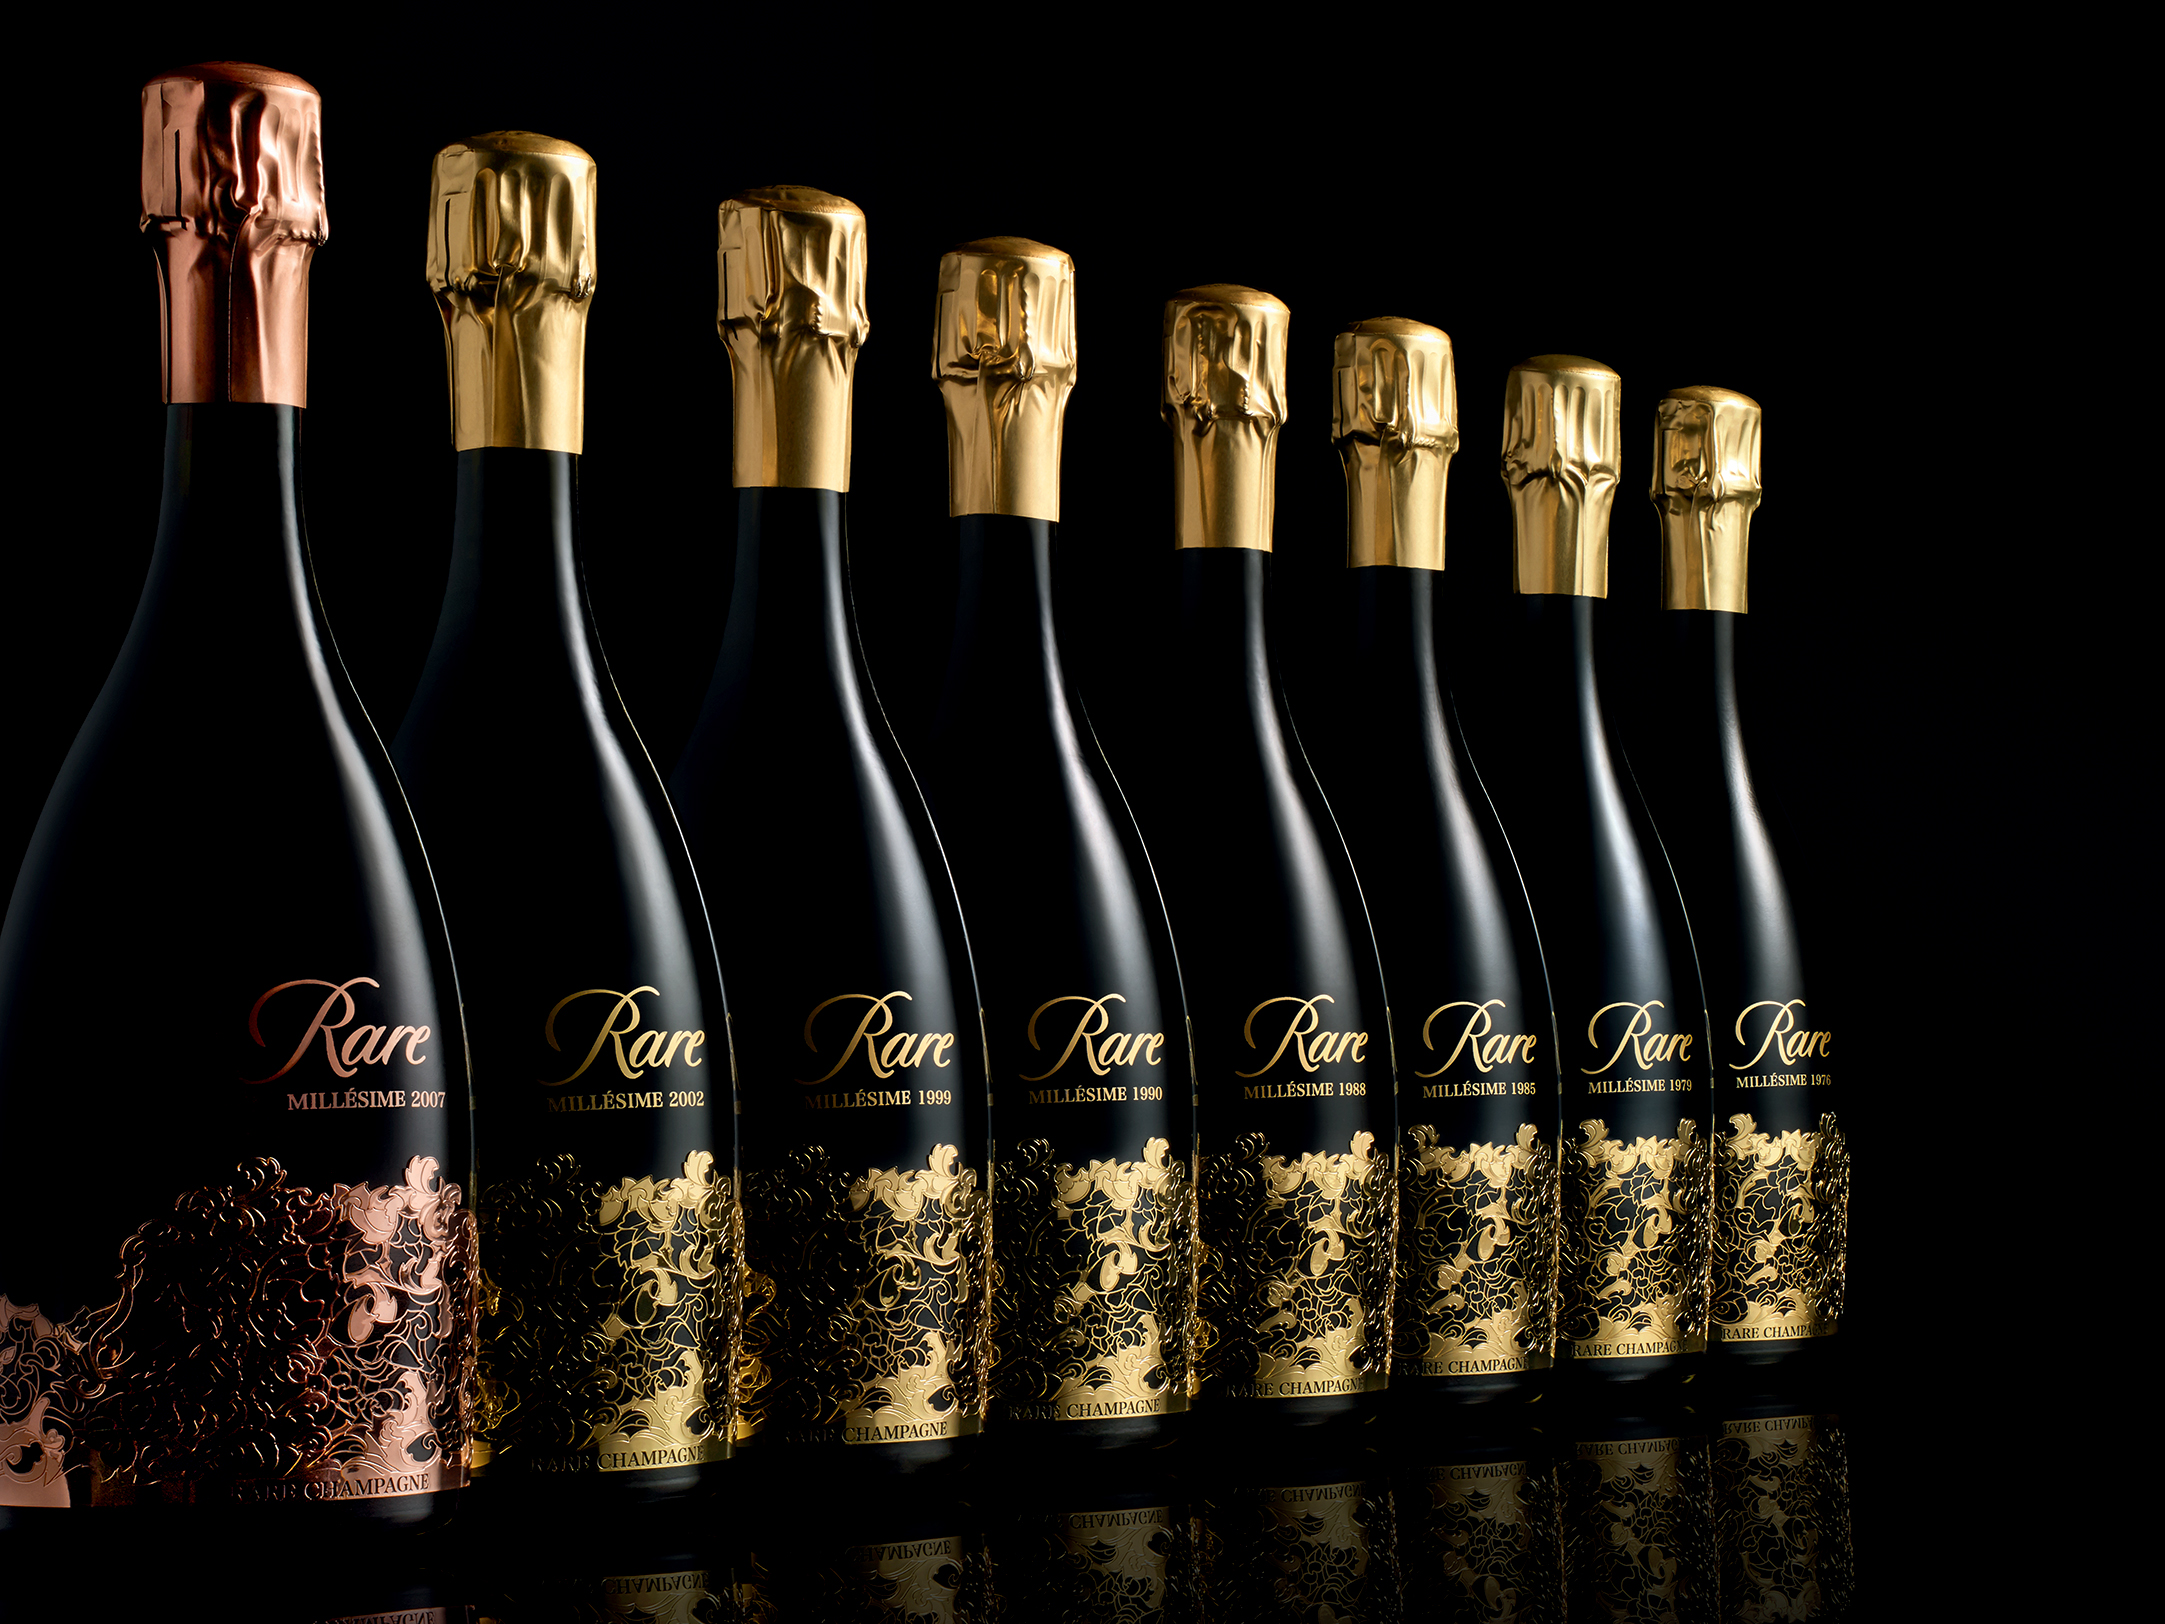 vintages - Truly an extraordinary occurrence, only nine vintages of Rare Champagne have been created in the last 4 decades: 1976, 1979, 1985, 1988, 1990, 1998, 1999, 2002, and Rare Rosé Millésime 2007.